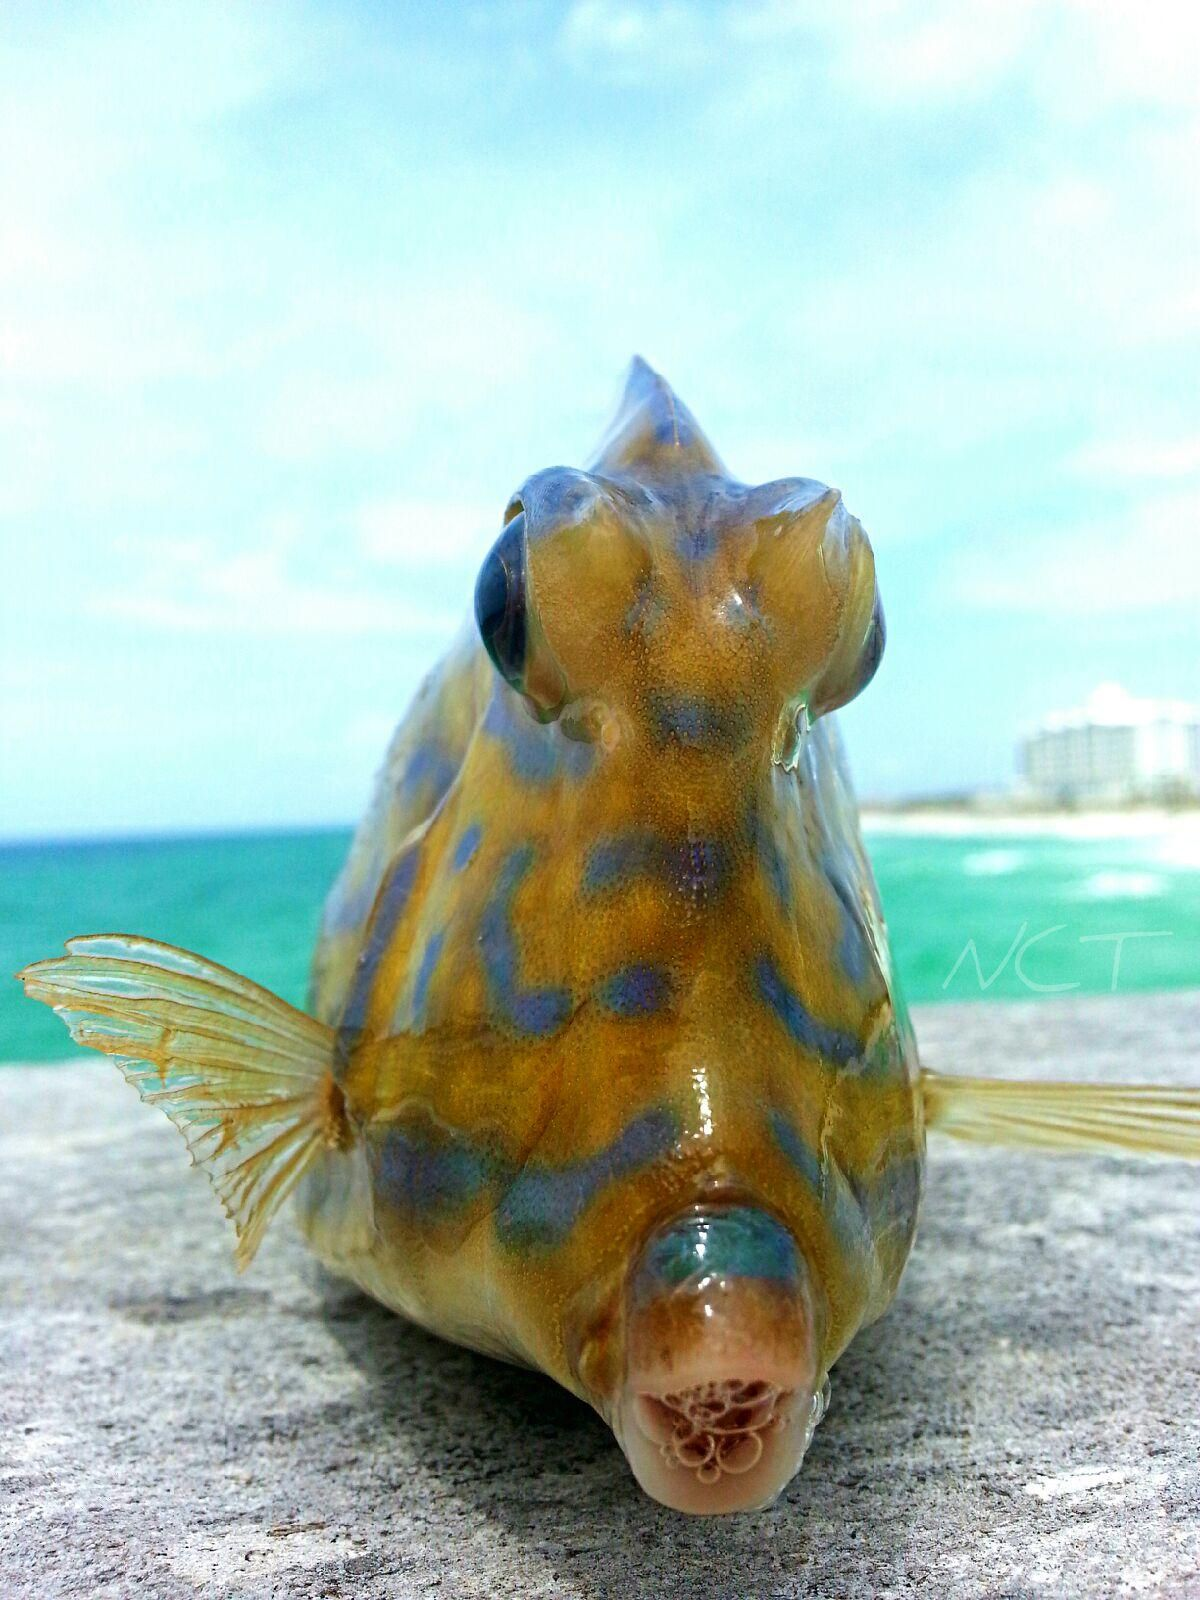 Trigger fish gulf of mexico into the water for Florida gulf fish